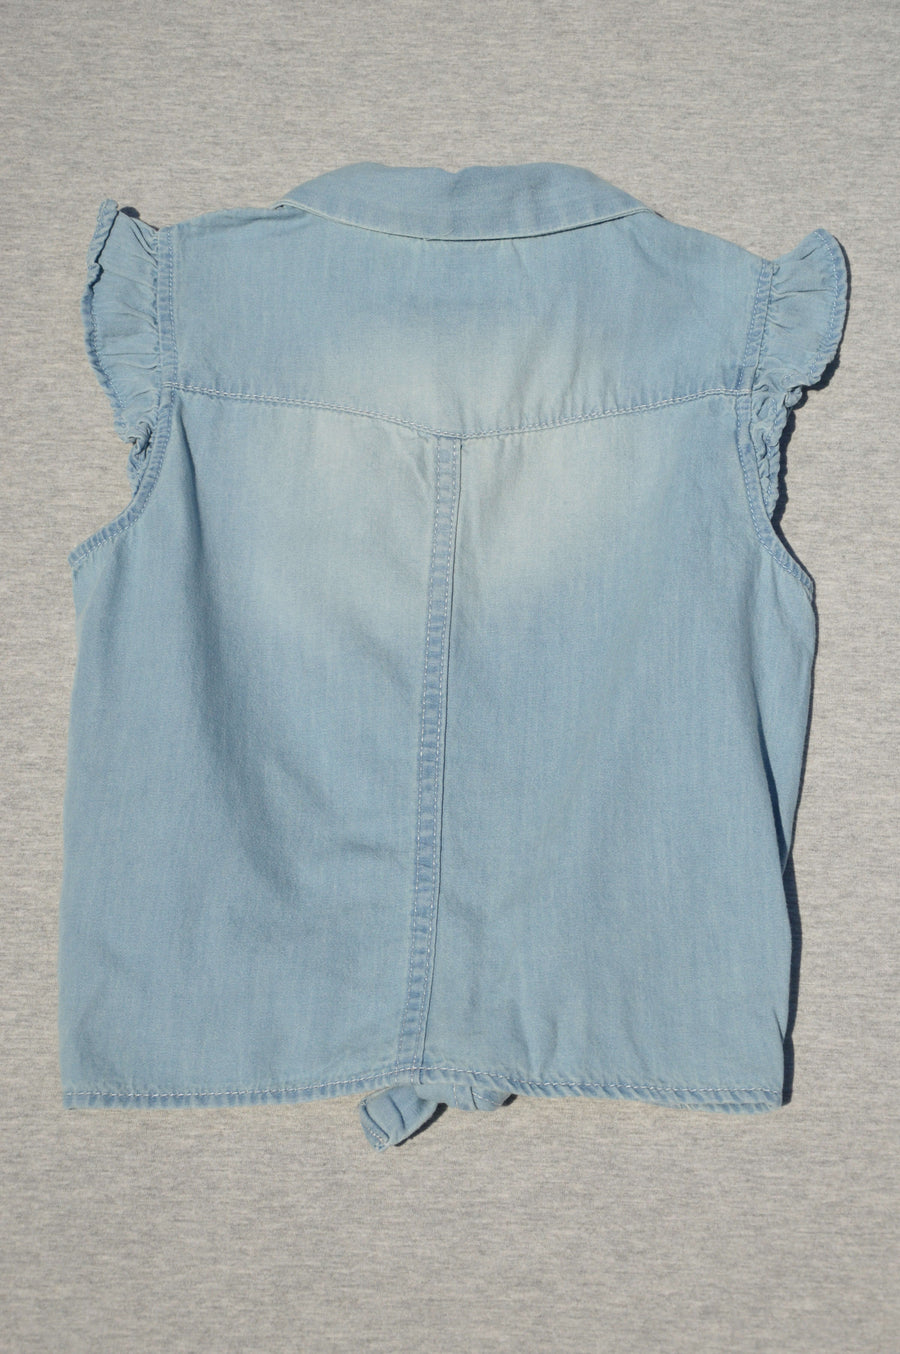 H&M denim effect top, size 6-7